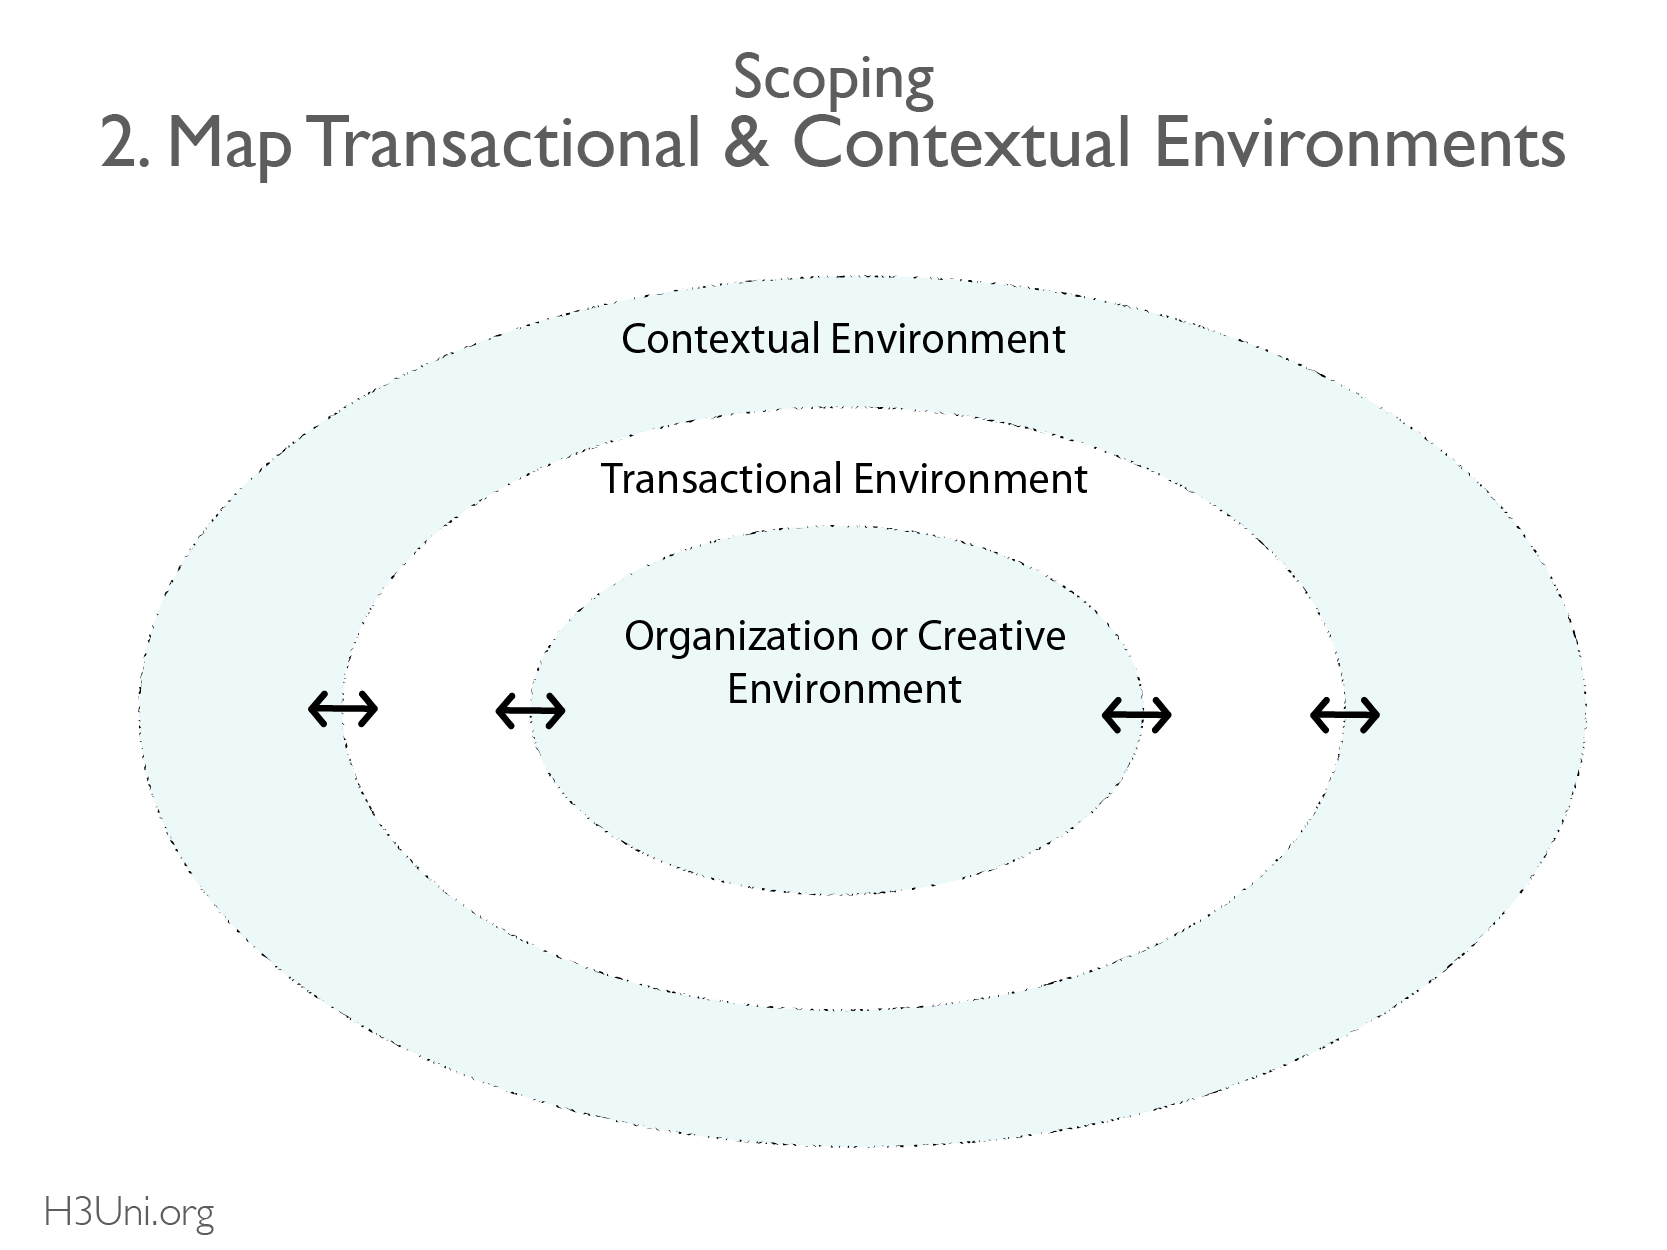 Map Transactional & Contextual environments